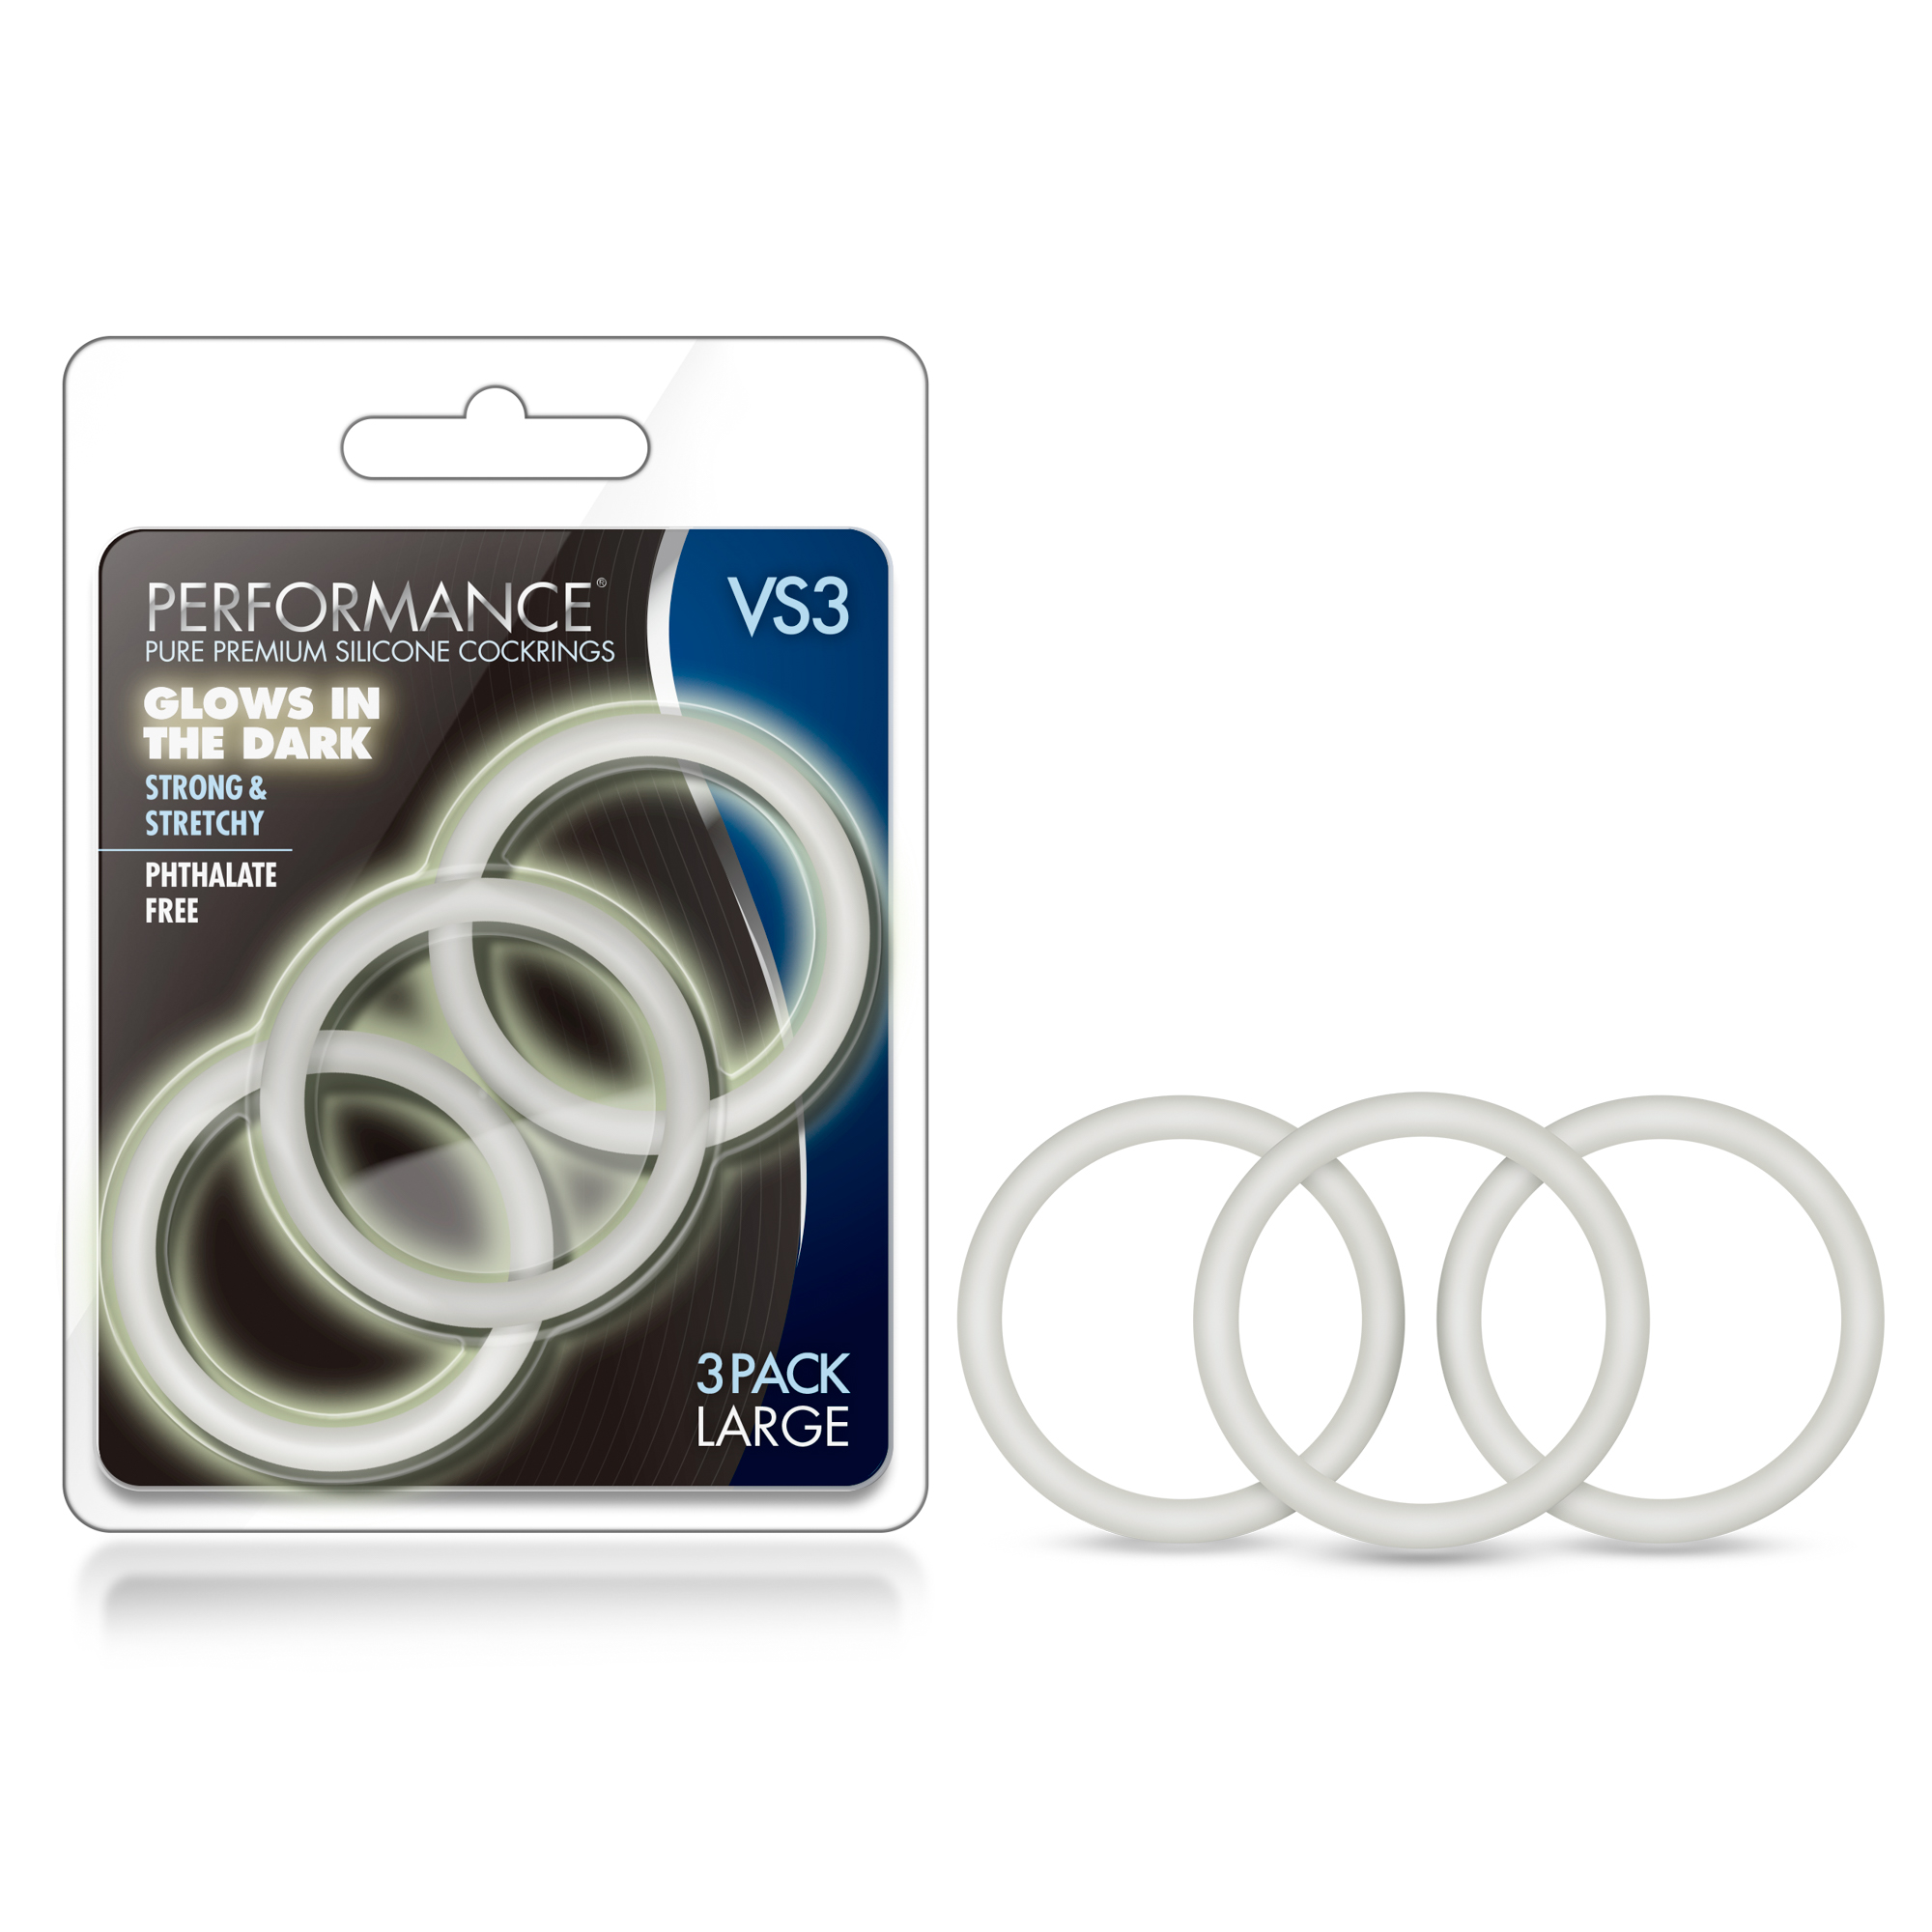 Performance - VS3 Pure Premium Silicone Cock Rings - Large - White